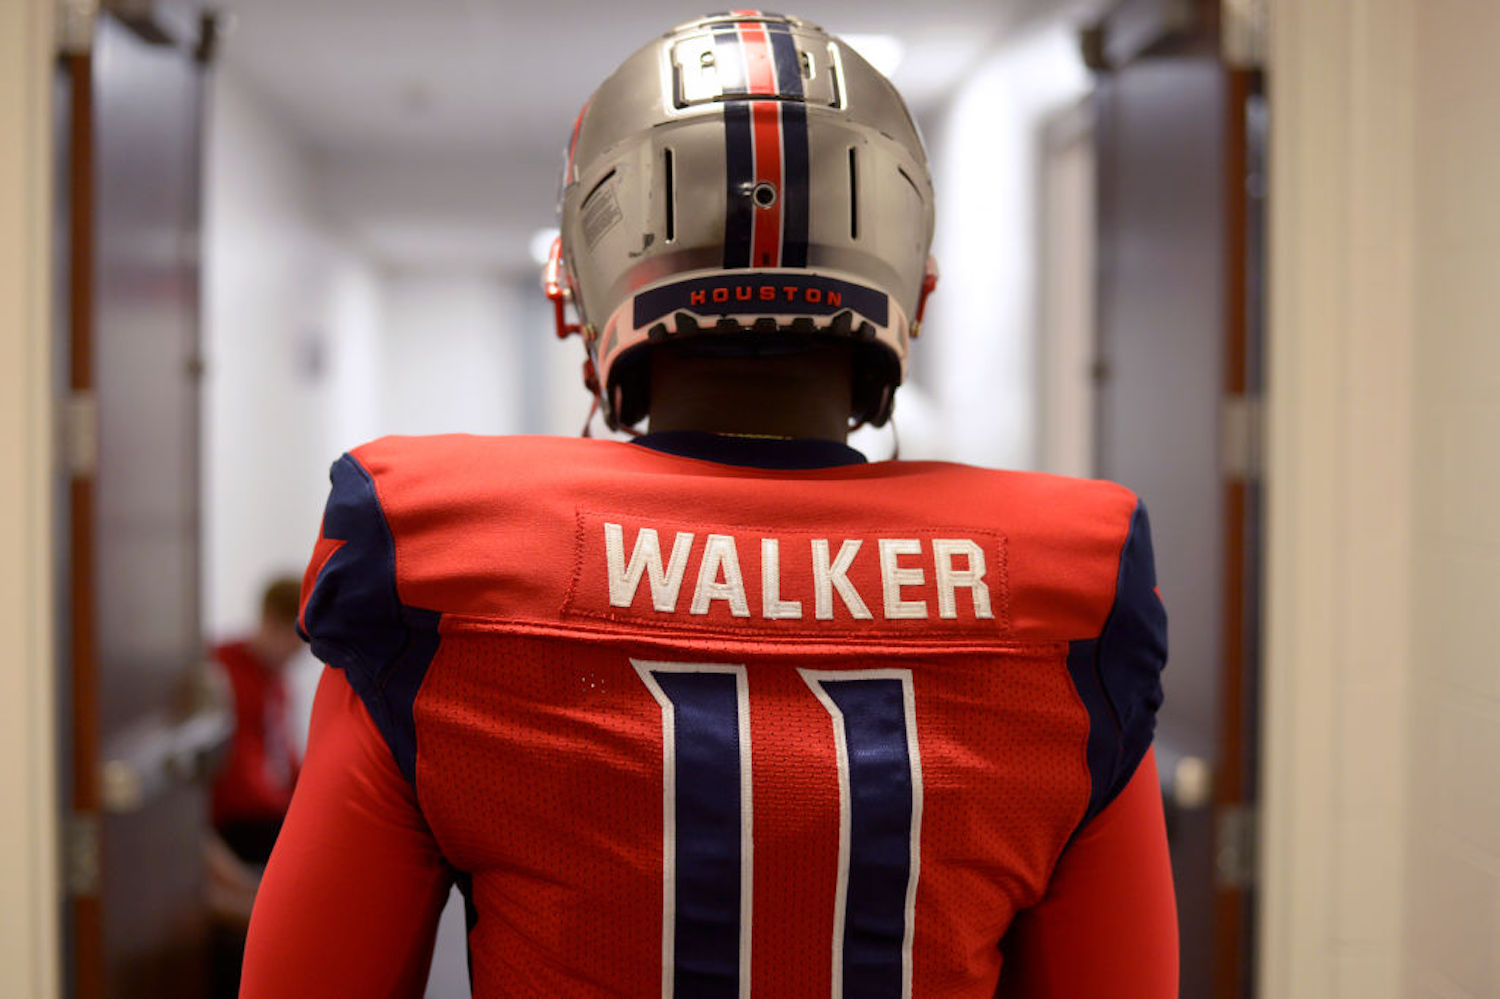 With Teddy Bridgewater inactive for Week 11, PJ Walker will get the start for the Carolina Panthers. So, who is Walker and how will he fare in his first NFL start?